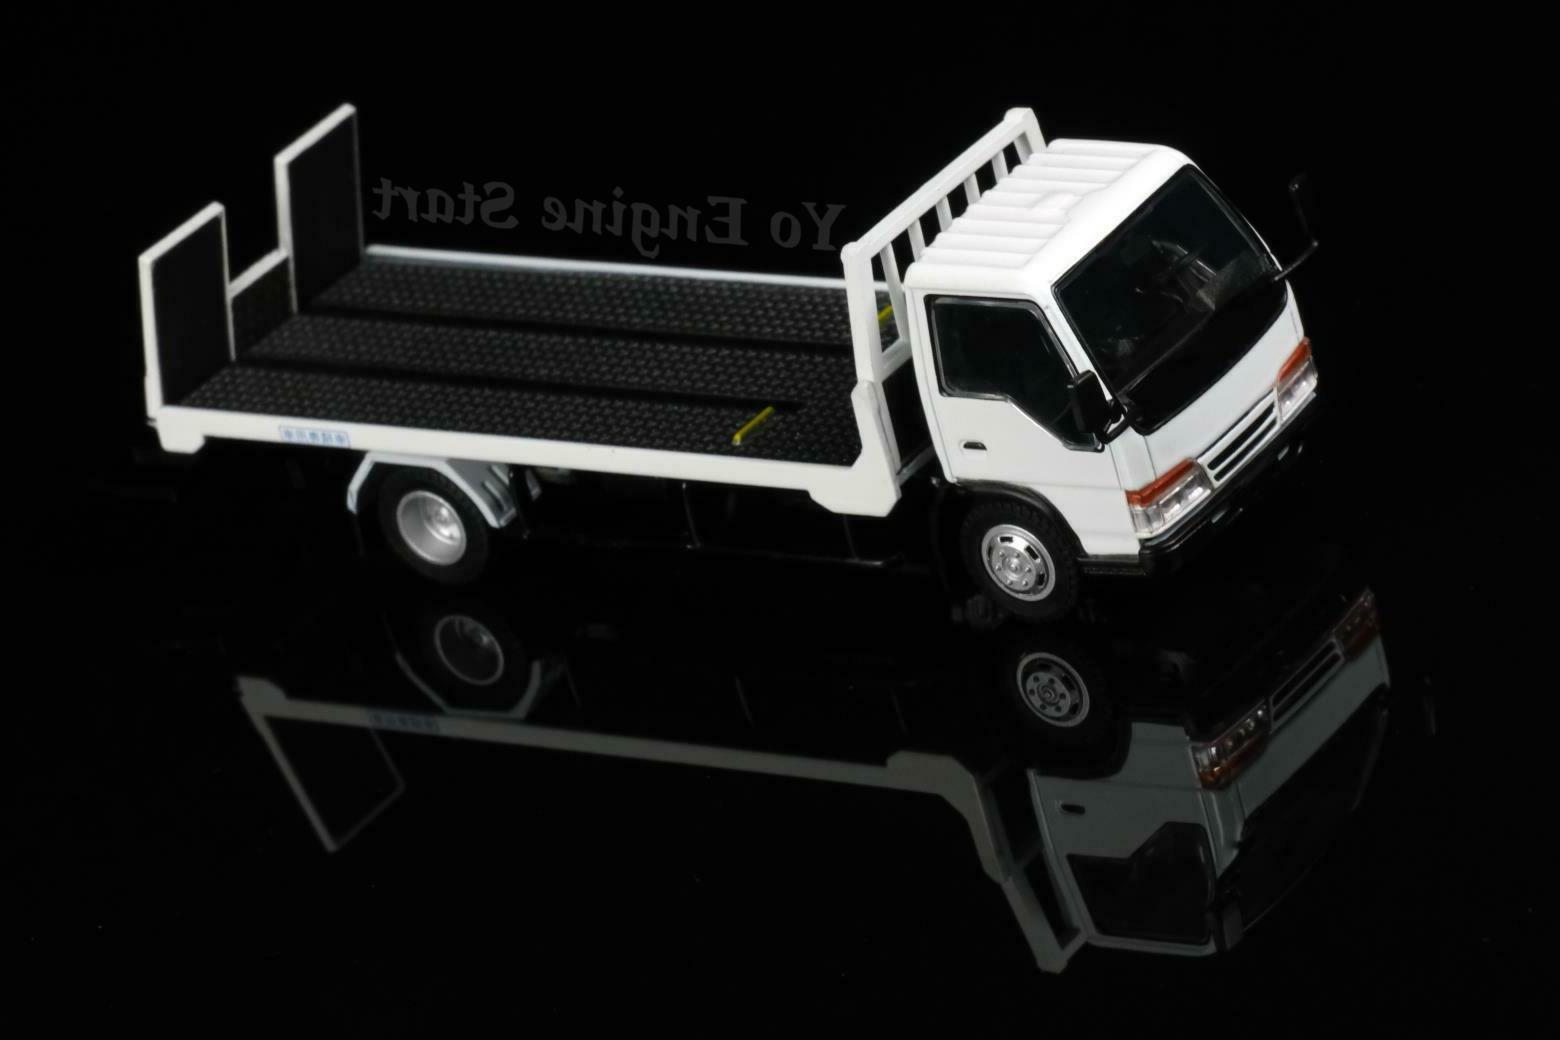 Y.E.S. Isuzu Flatbed Tow with accessories